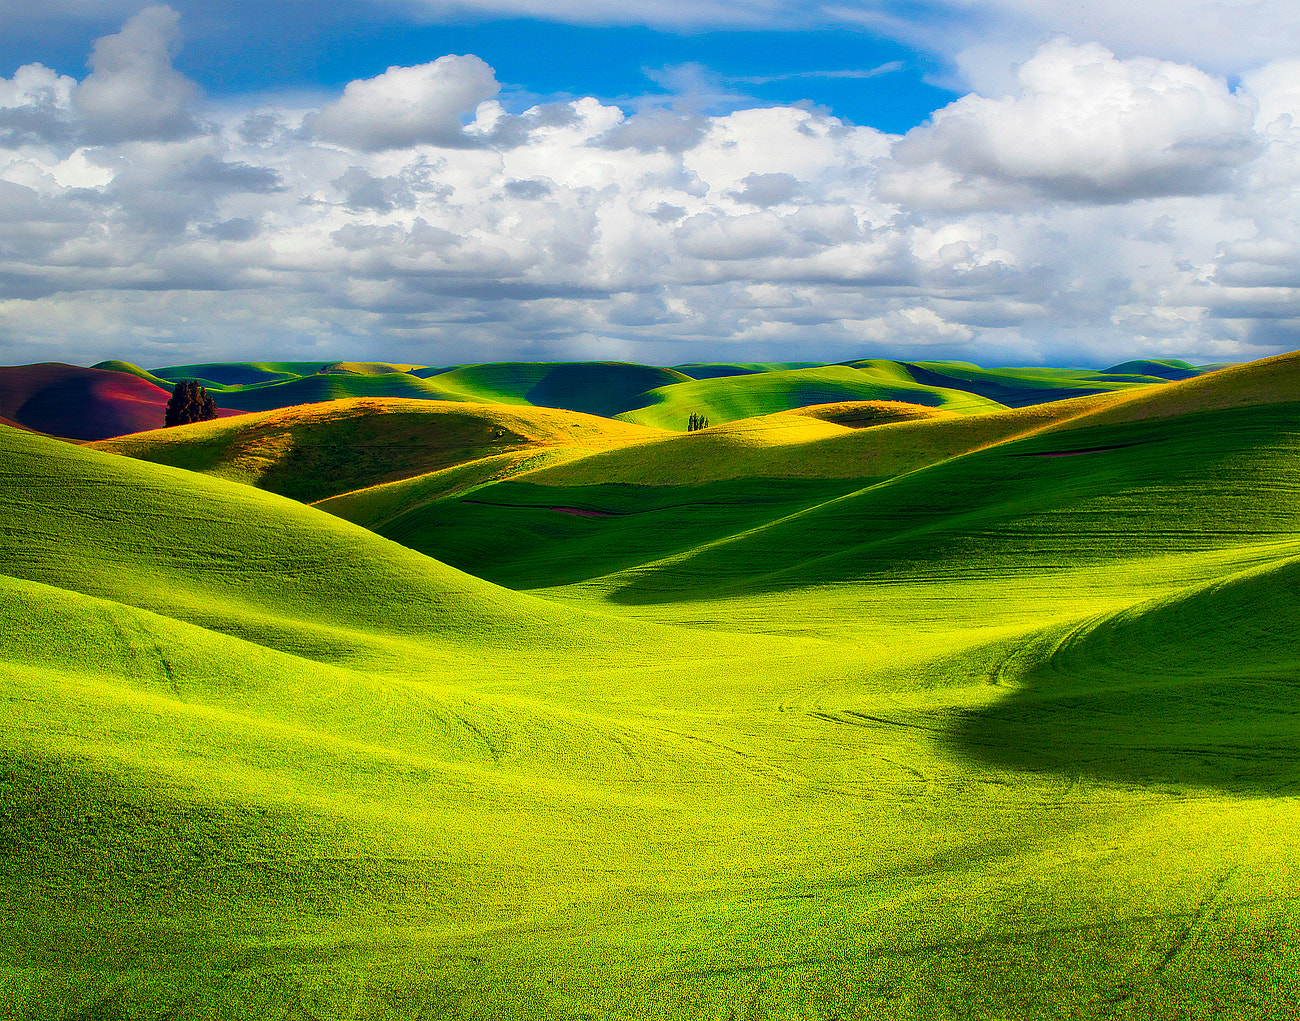 Photograph Storm Clouds In The Palouse by Kevin McNeal on 500px